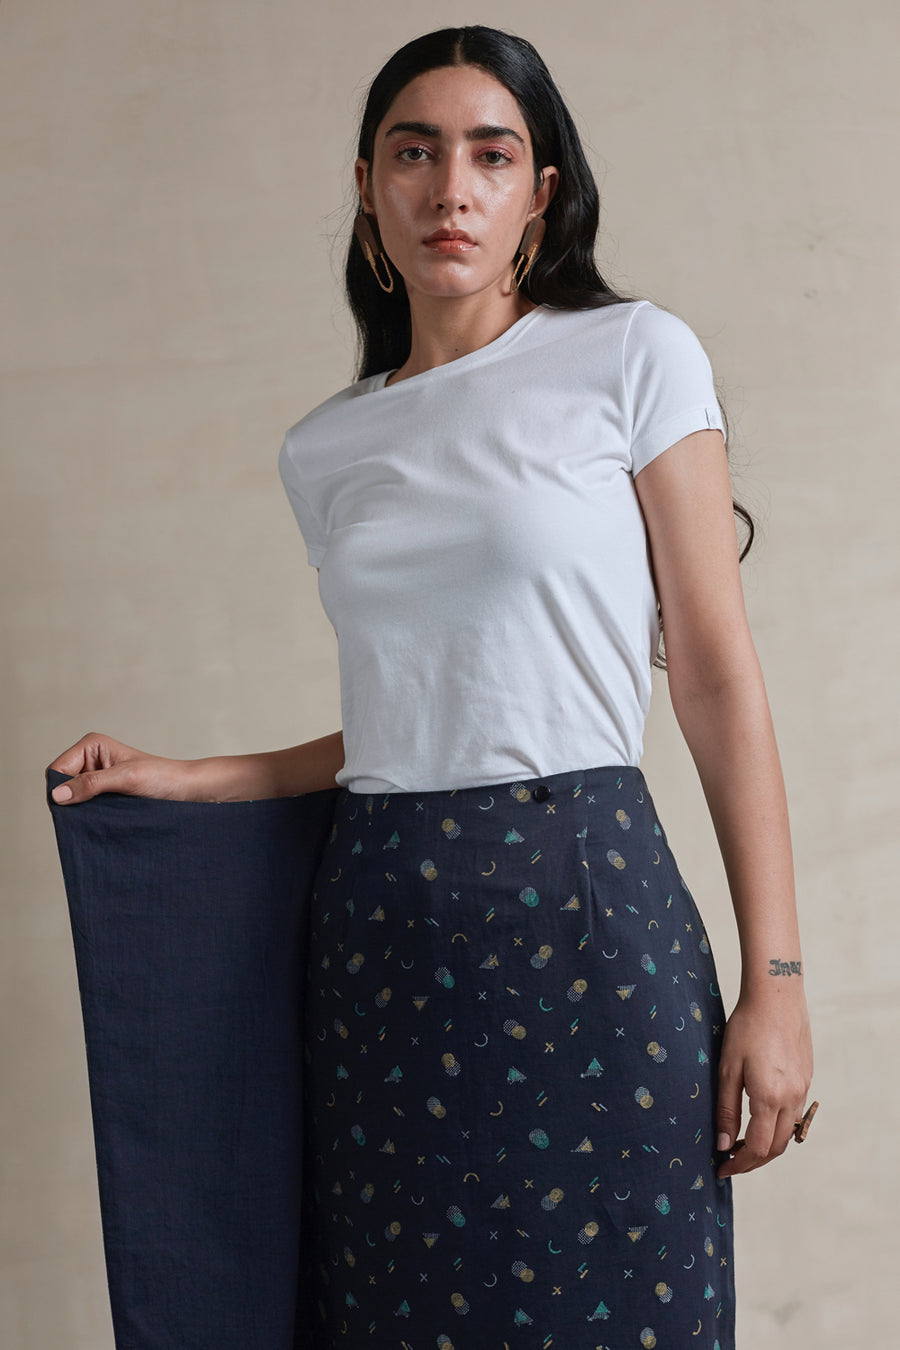 Cozy Evening Wrap Skirt - Ethical made fashion - onlyethikal